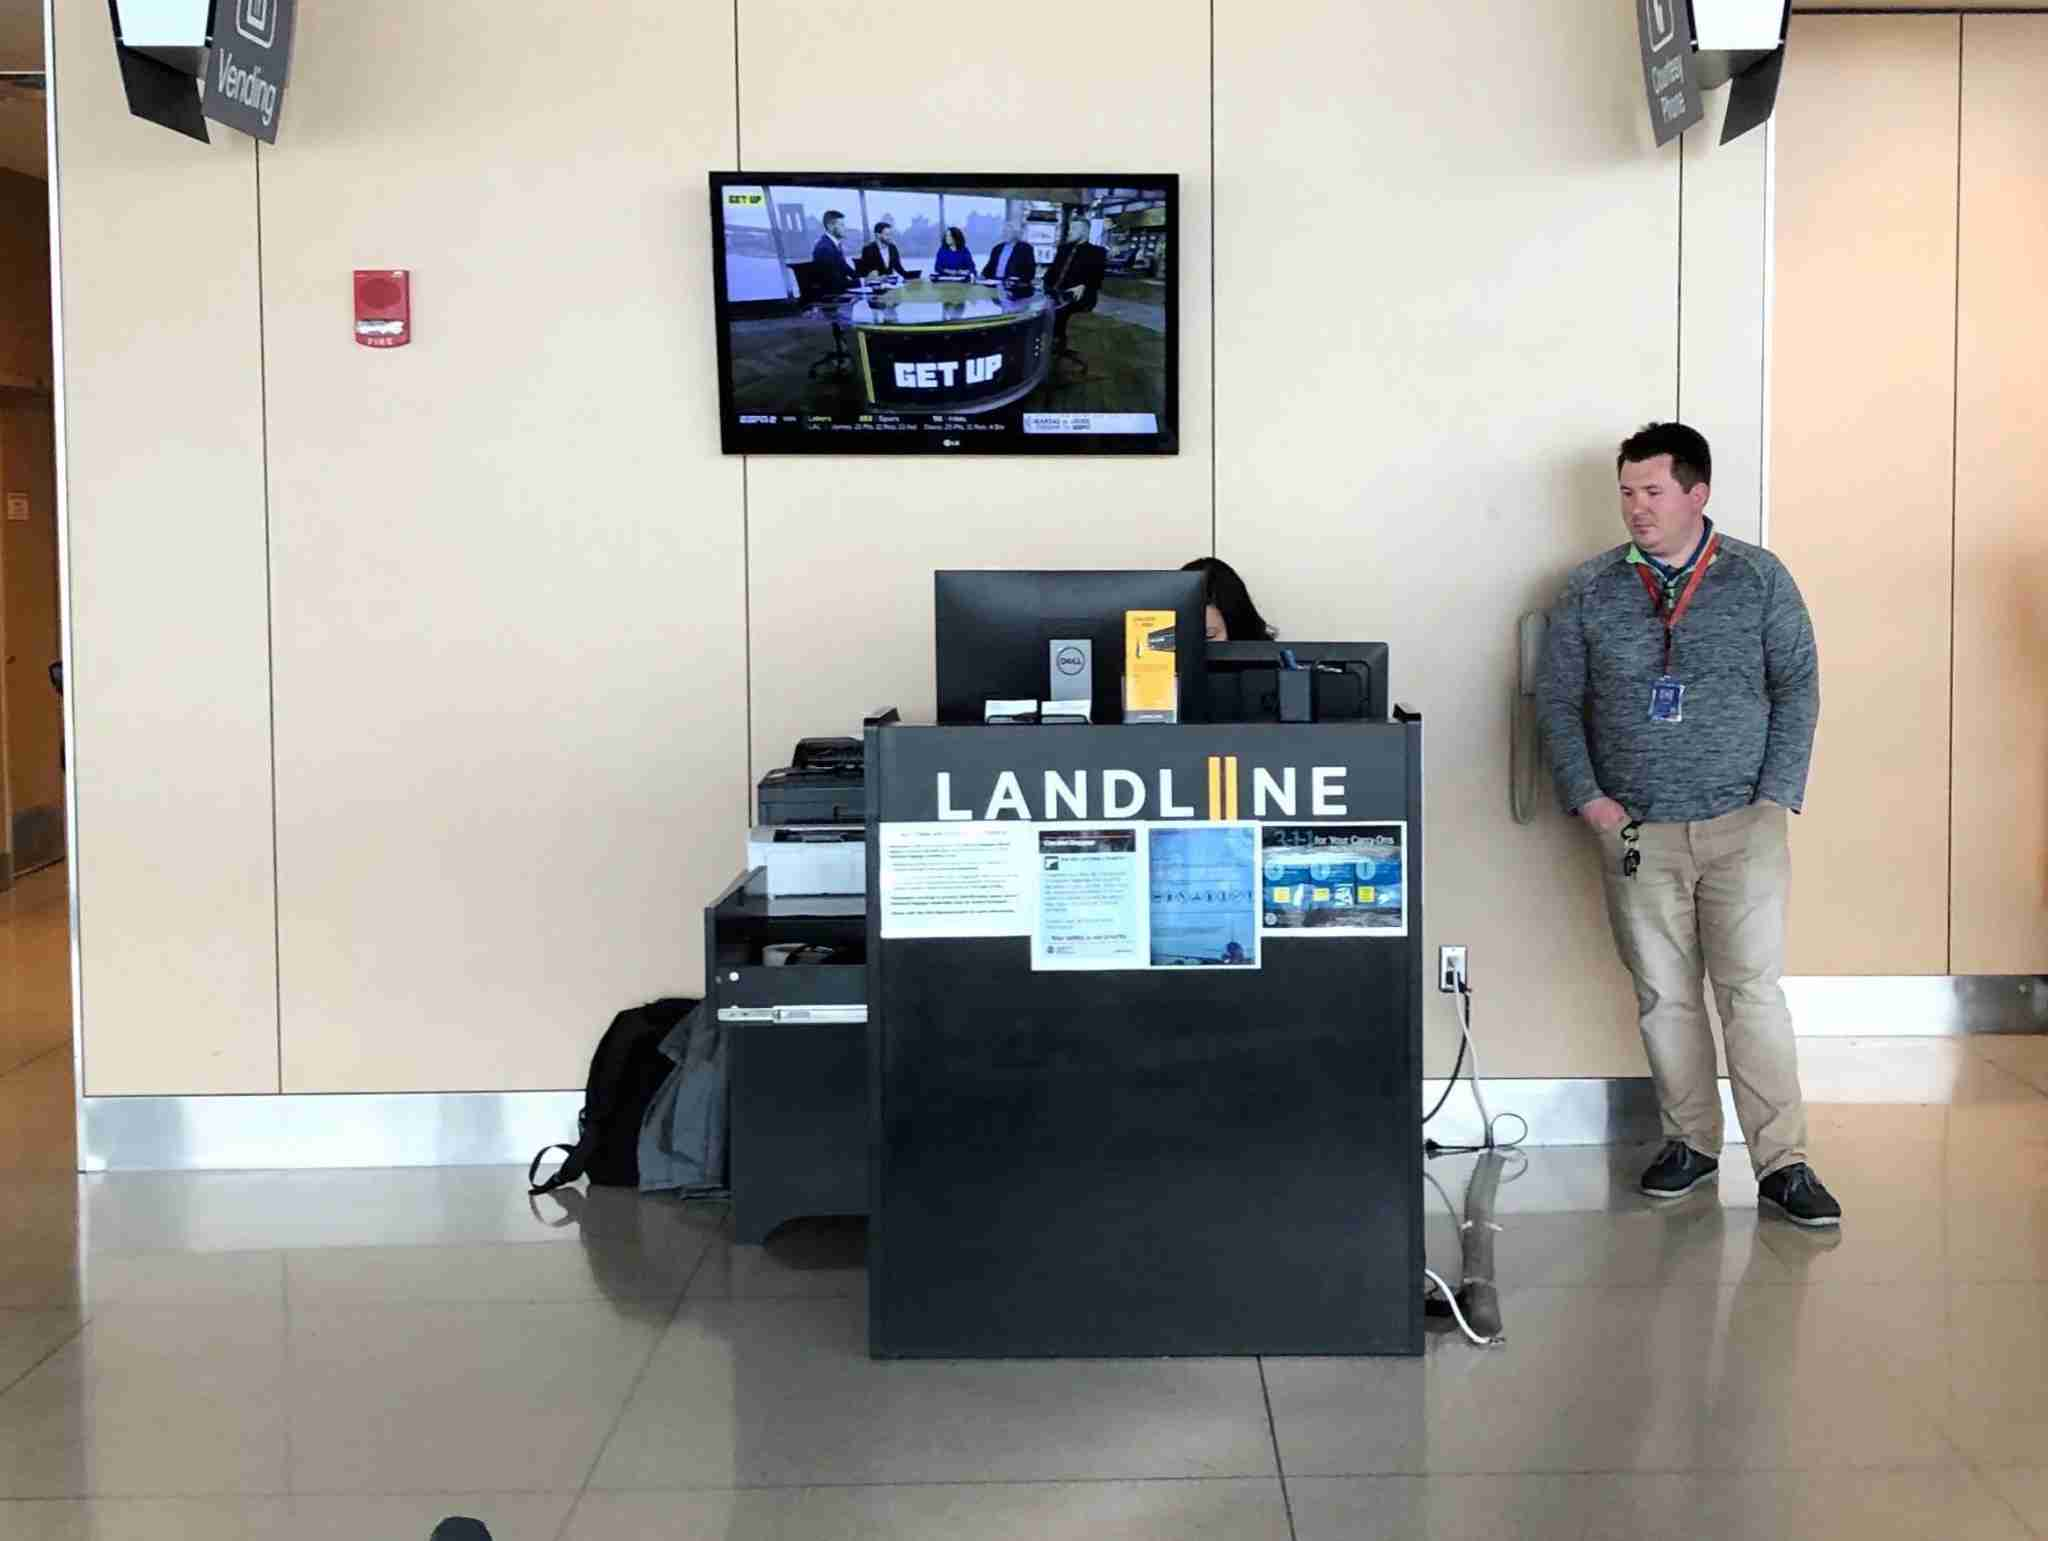 Landline checks travelers in at its counter at Duluth as if they are are airline passengers, issuing boarding passes for their entire trip and allowing them to check bags through to their final destination. (Image by Edward Russell/TPG)